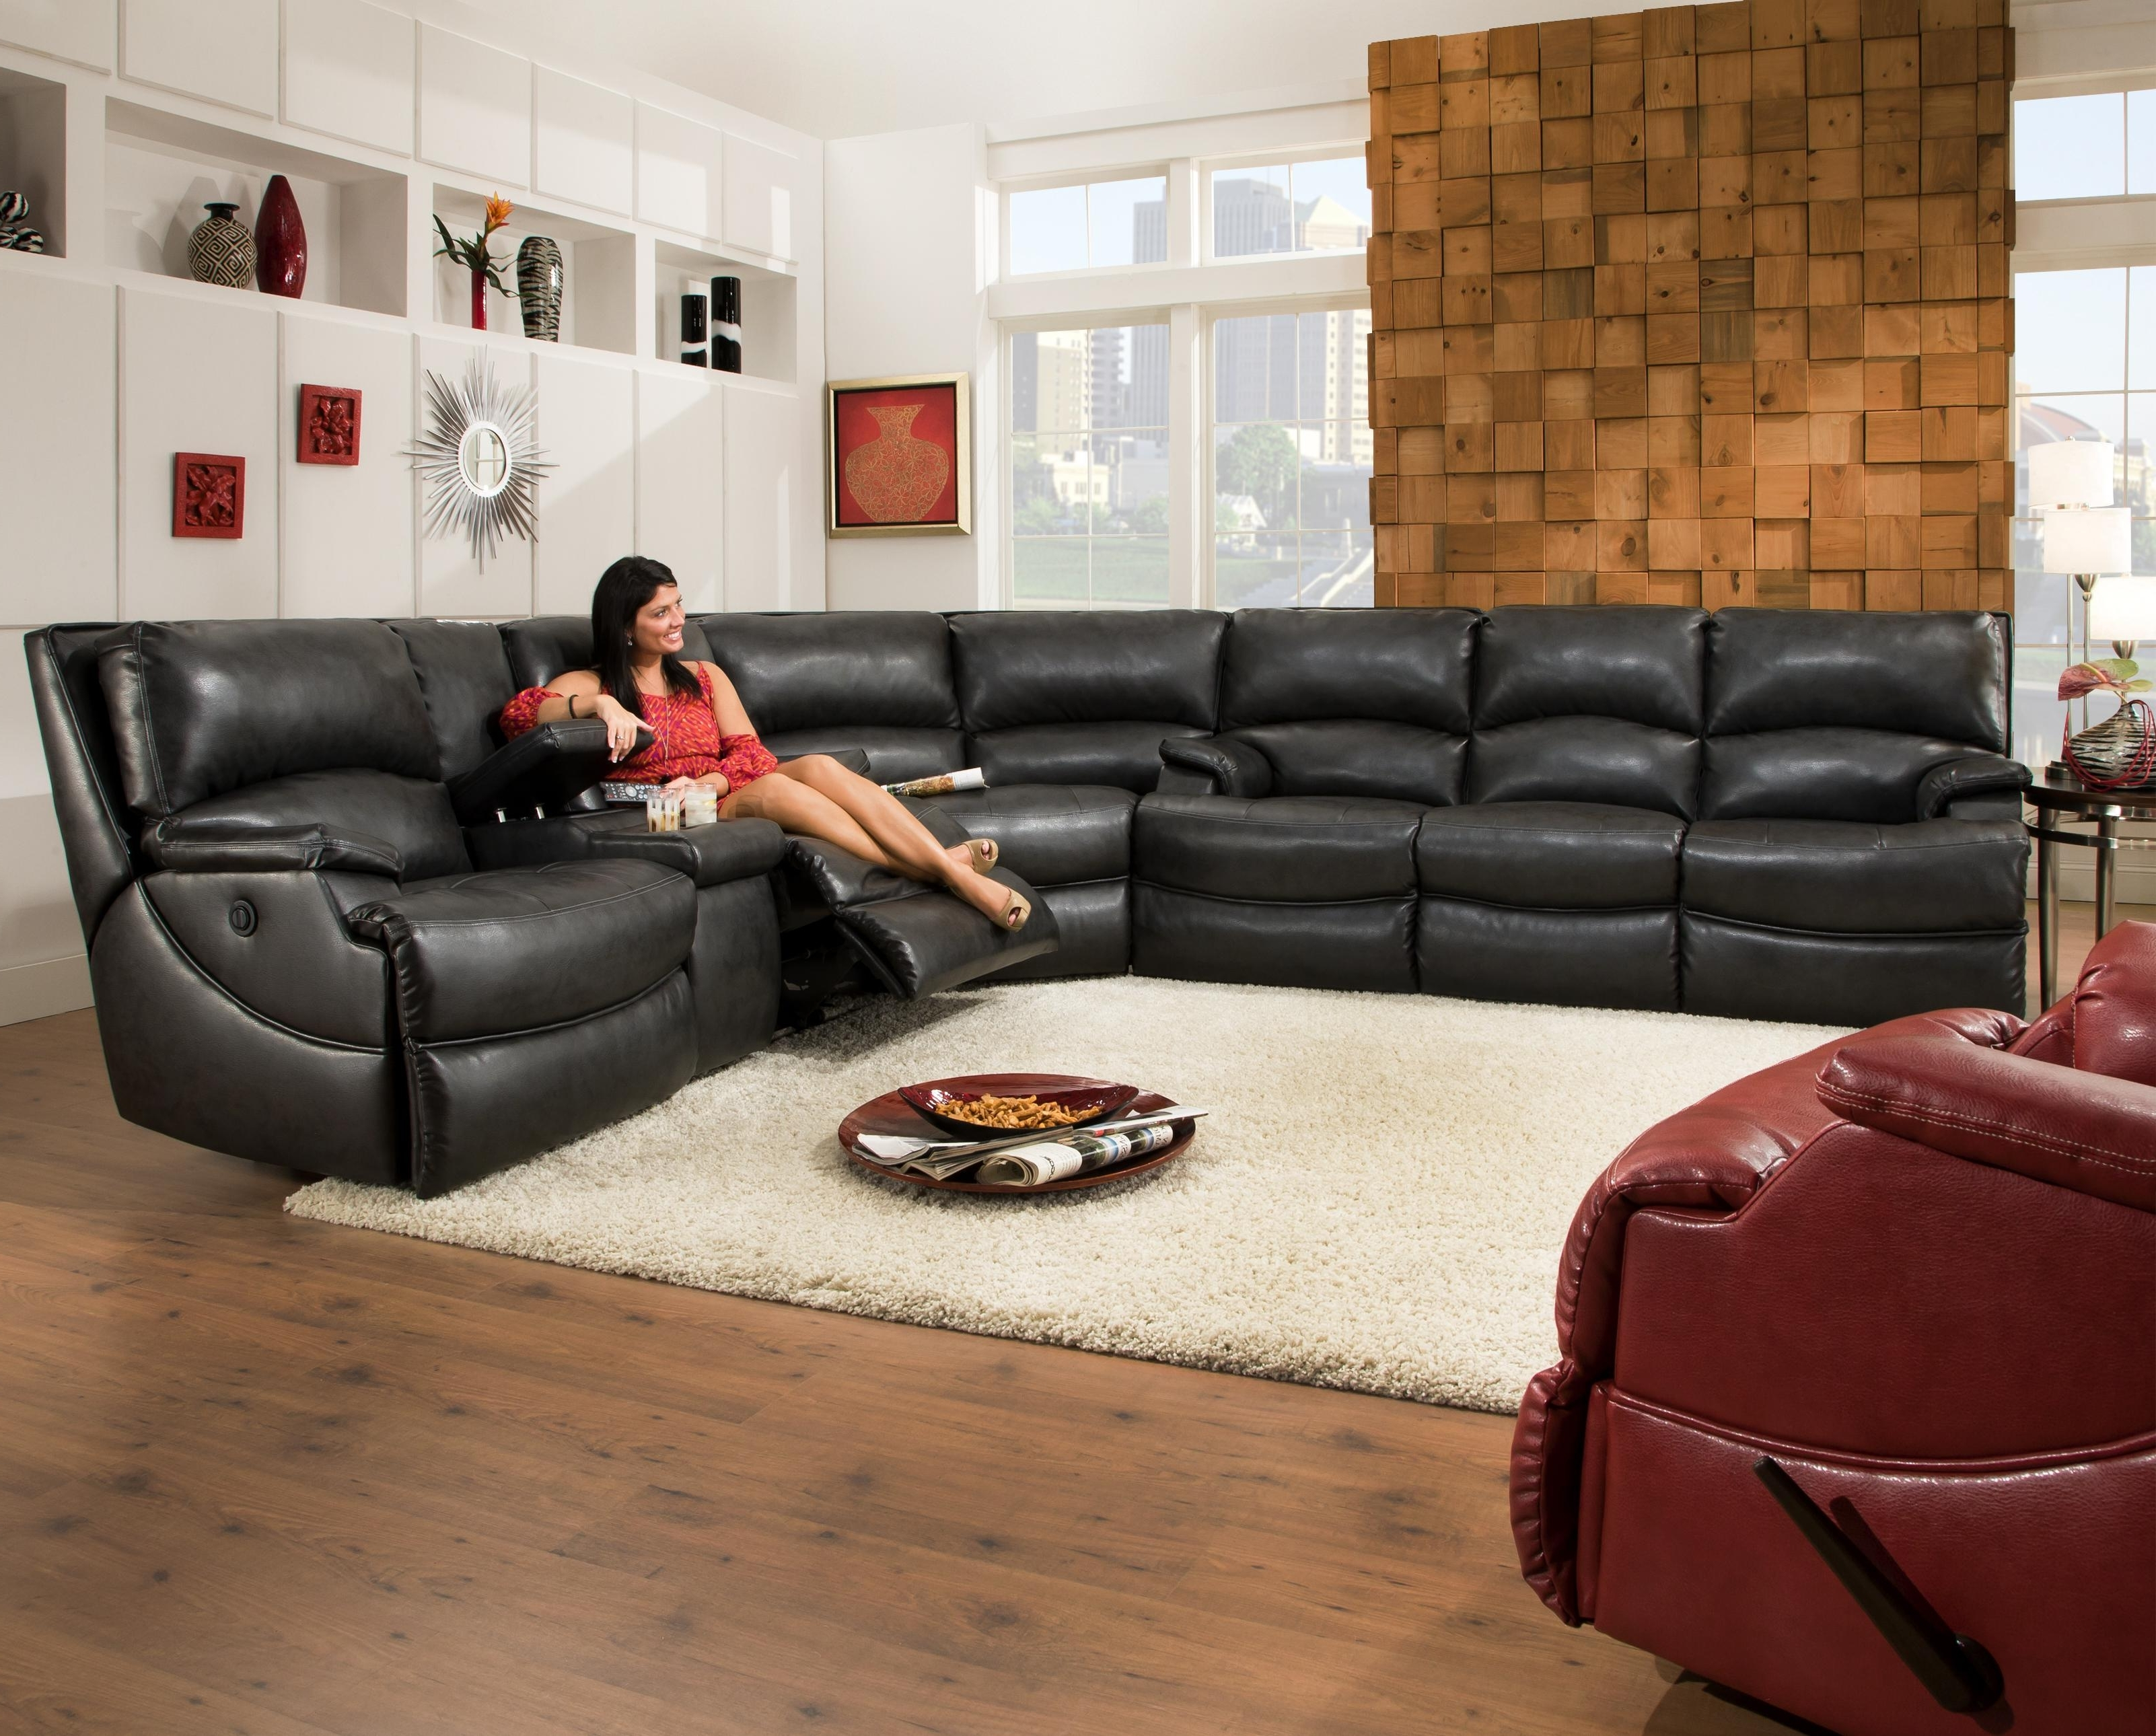 Preferred Sectional Sofas At Charlotte Nc For Amazing Black Sectional Sofa With Recliners 48 On Sleeper Sofa (View 9 of 15)